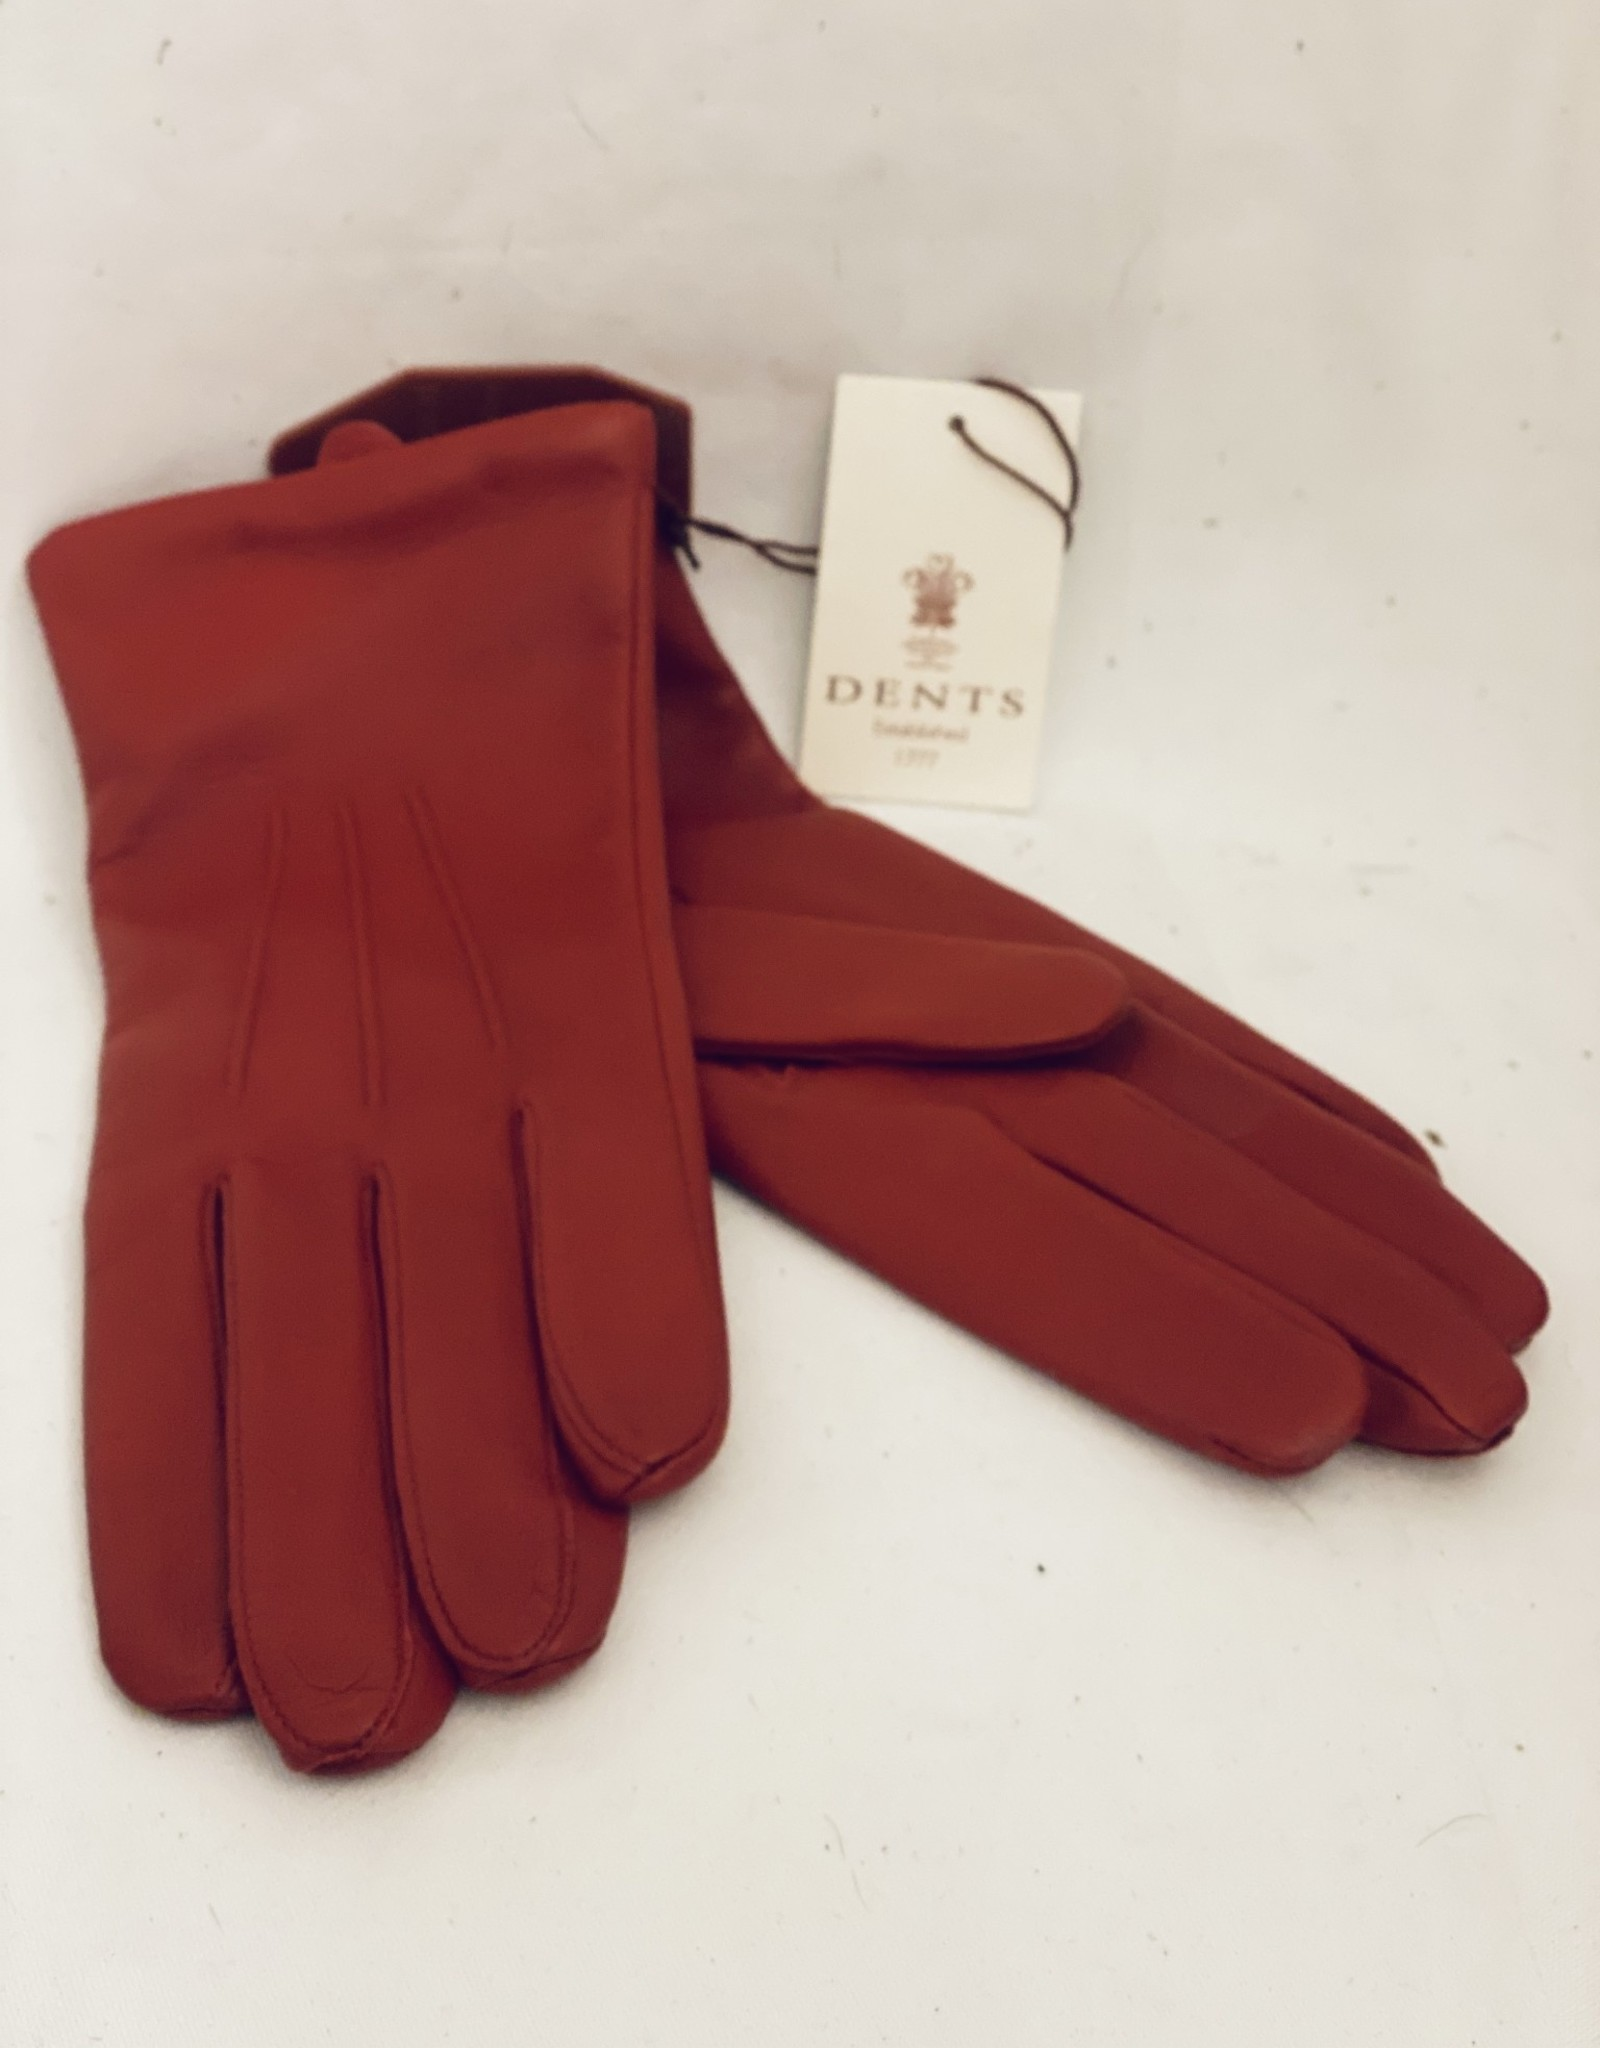 DENTS LADIES  LEATHER GLOVES FROM DENTS 7-1125